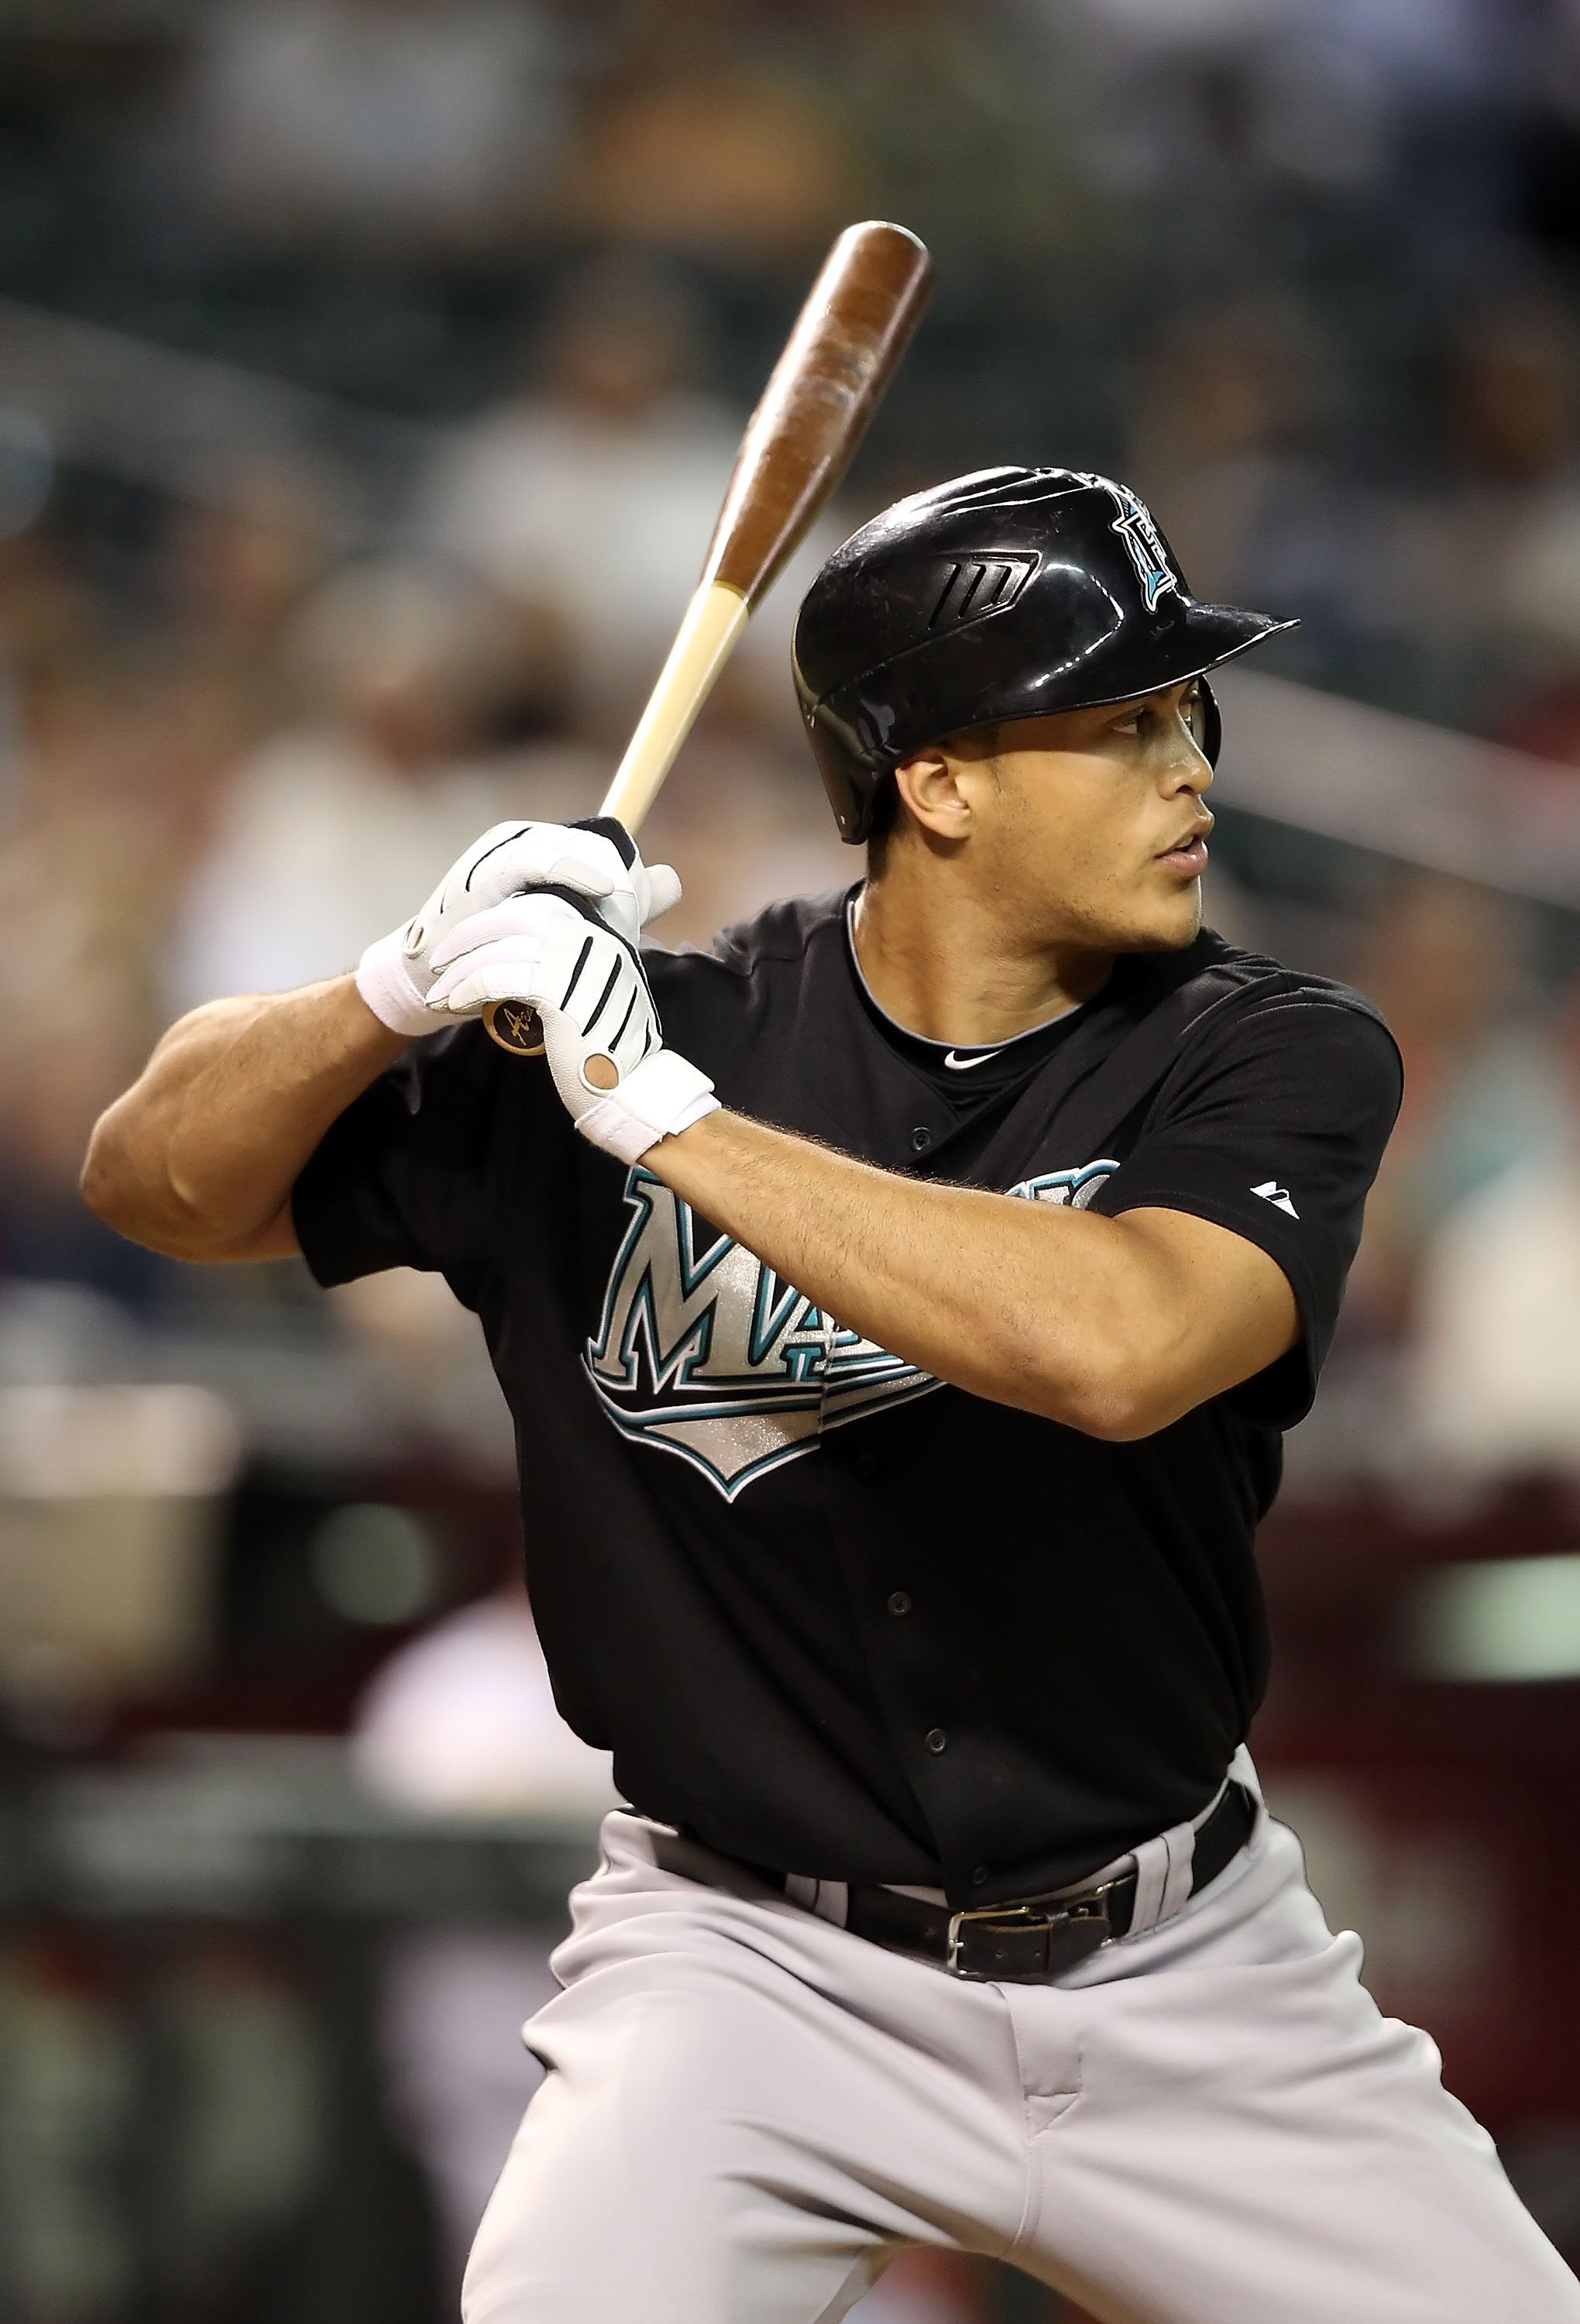 PHOENIX - JULY 08:  Mike Stanton #27 of the Florida Marlins at bat during the Major League Baseball game against the Arizona Diamondbacks at Chase Field on July 8, 2010 in Phoenix, Arizona. The Diamondbacks defeated the Marlins 10-4.  (Photo by Christian